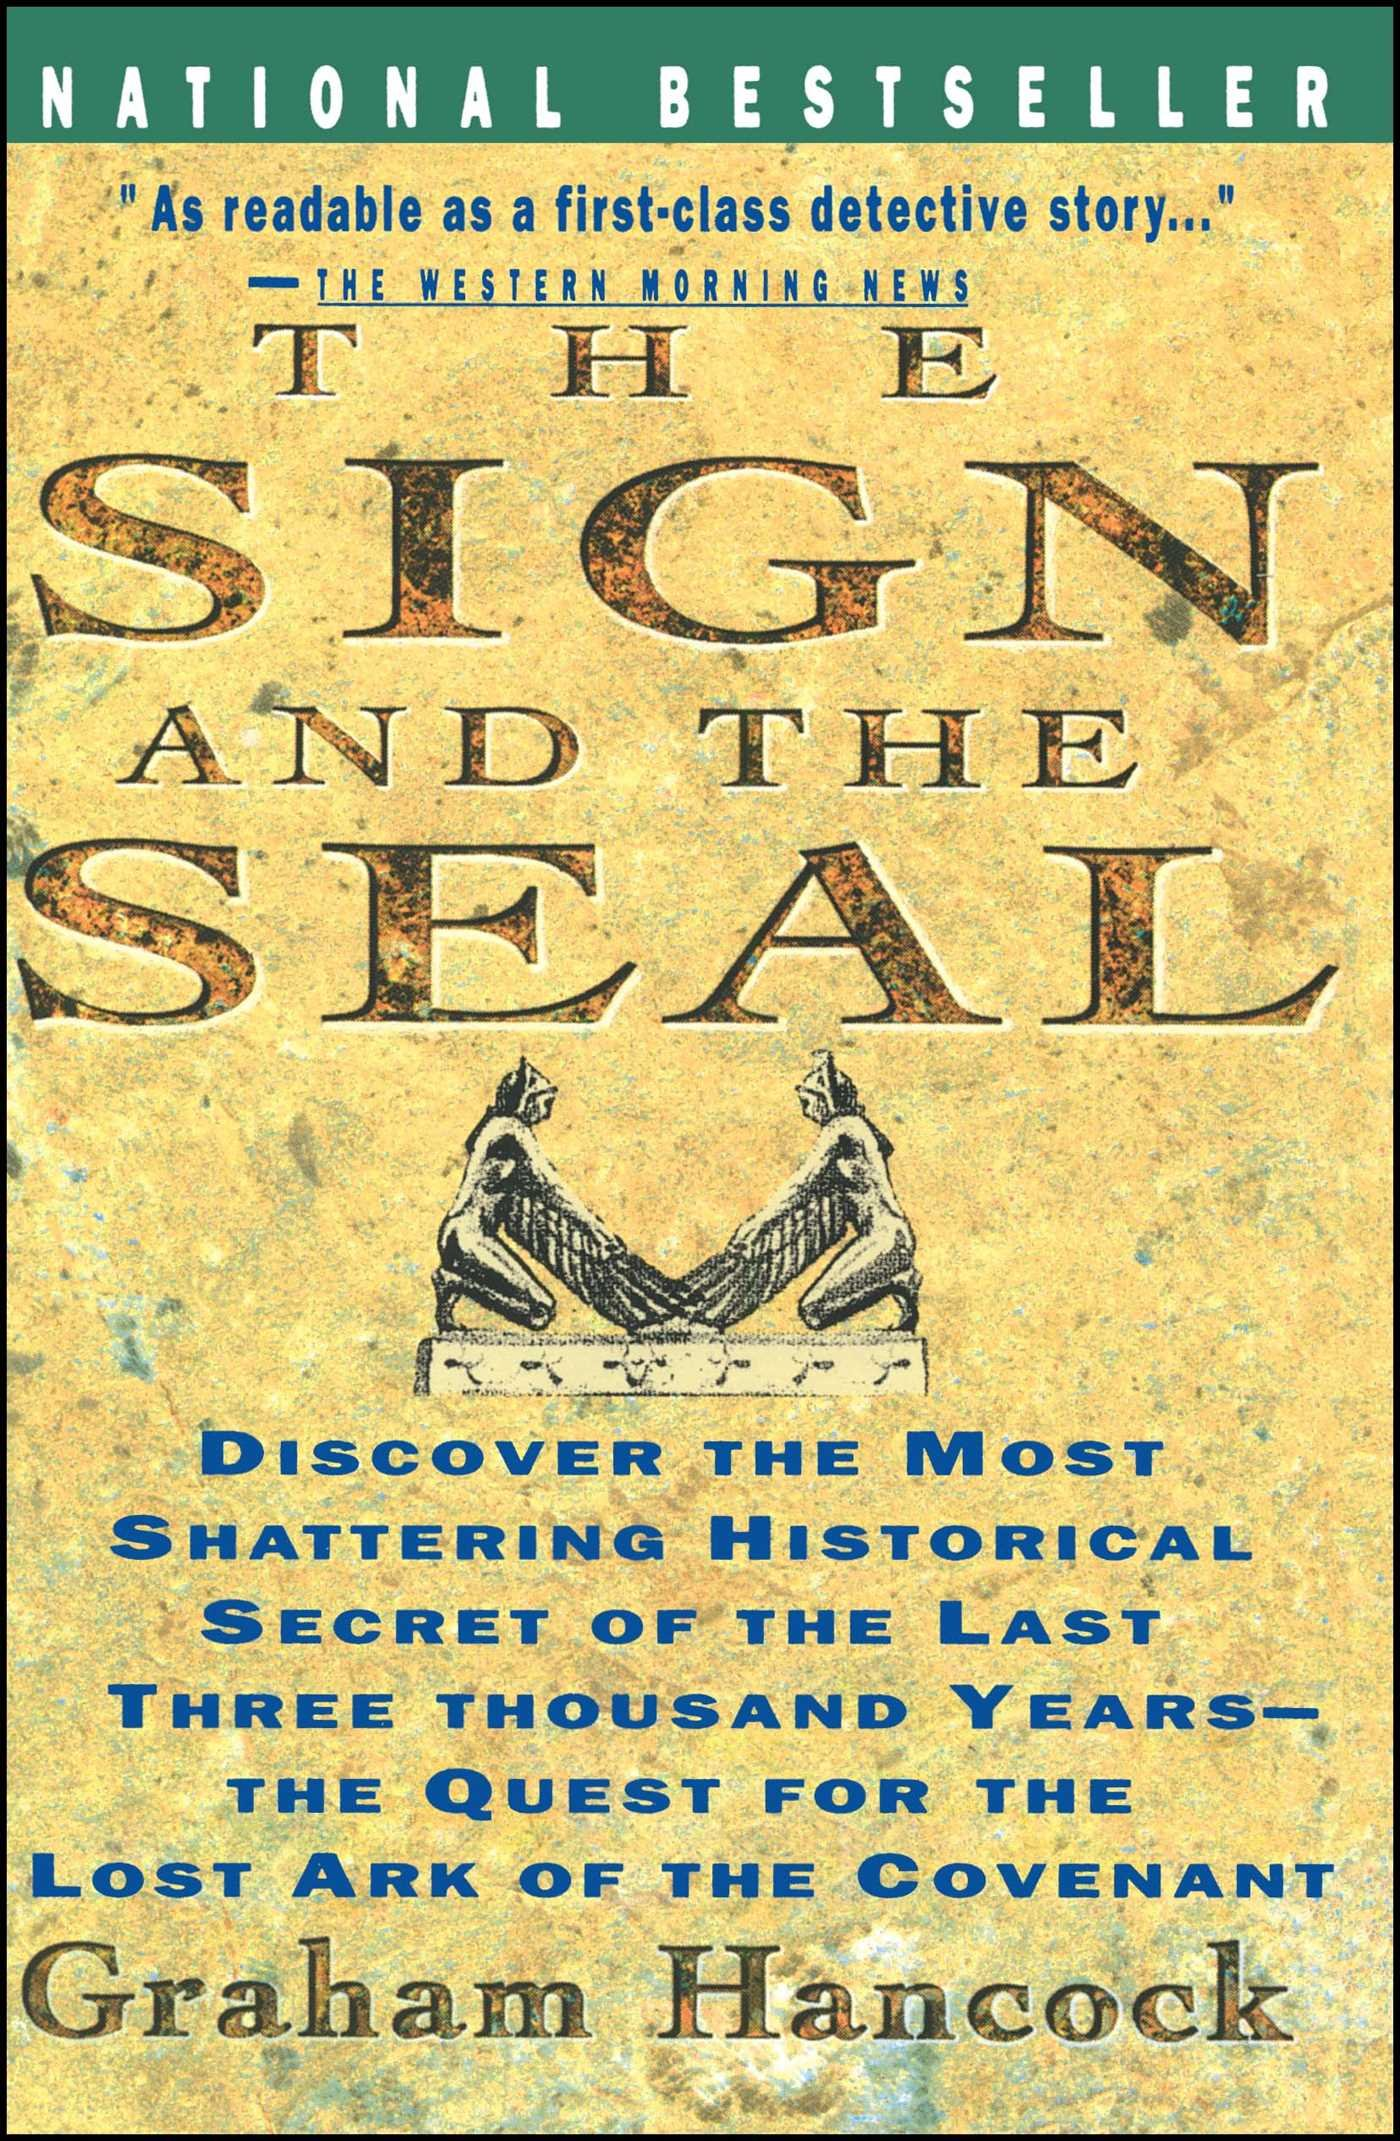 Designer deals club for hancock - Sign And The Seal The Quest For The Lost Ark Of The Covenant Graham Hancock 8601420119871 Amazon Com Books